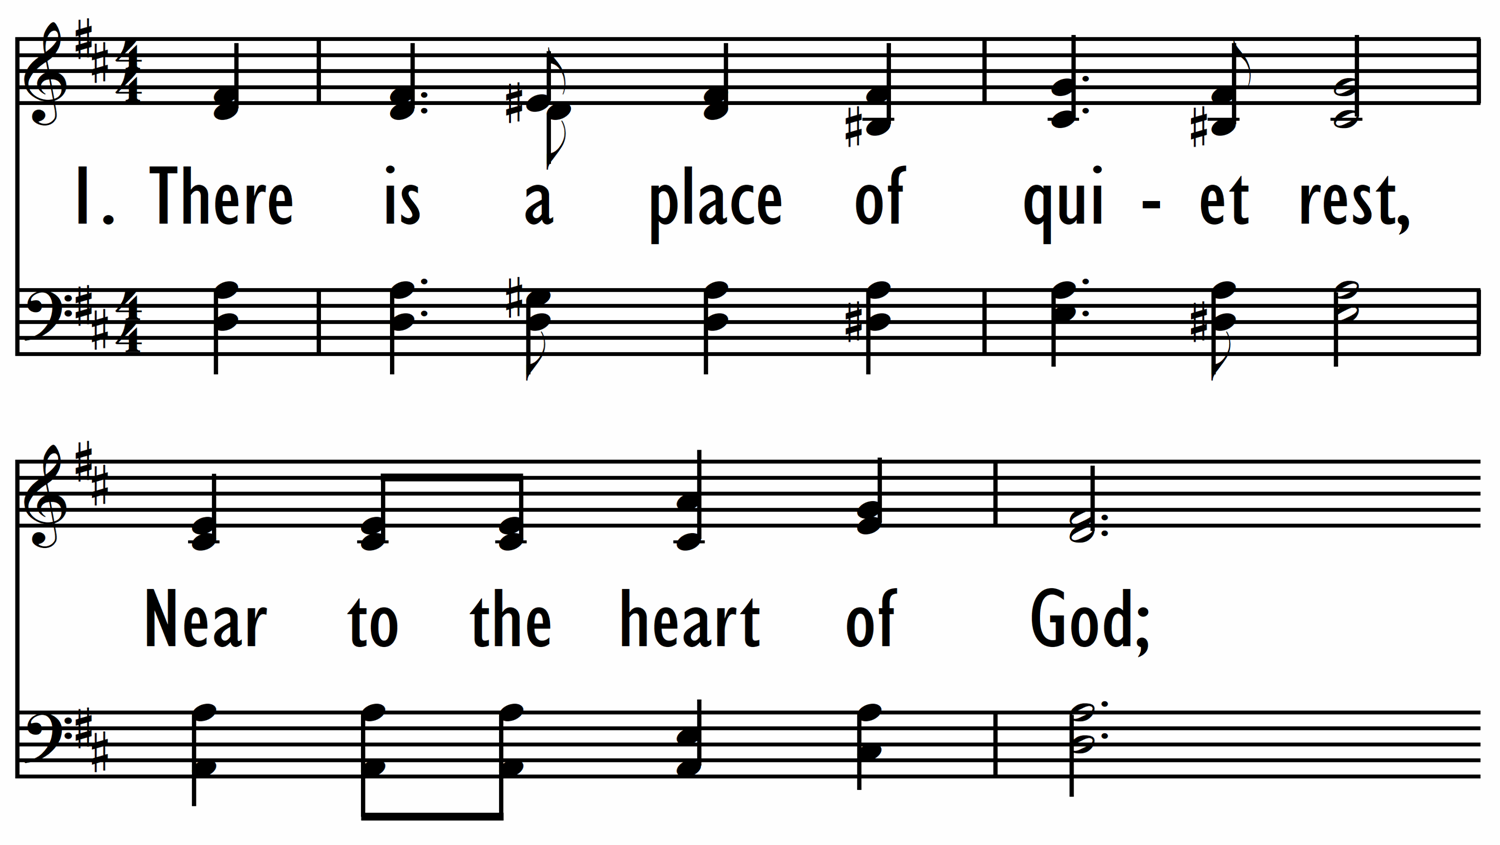 NEAR TO THE HEART OF GOD-ppt